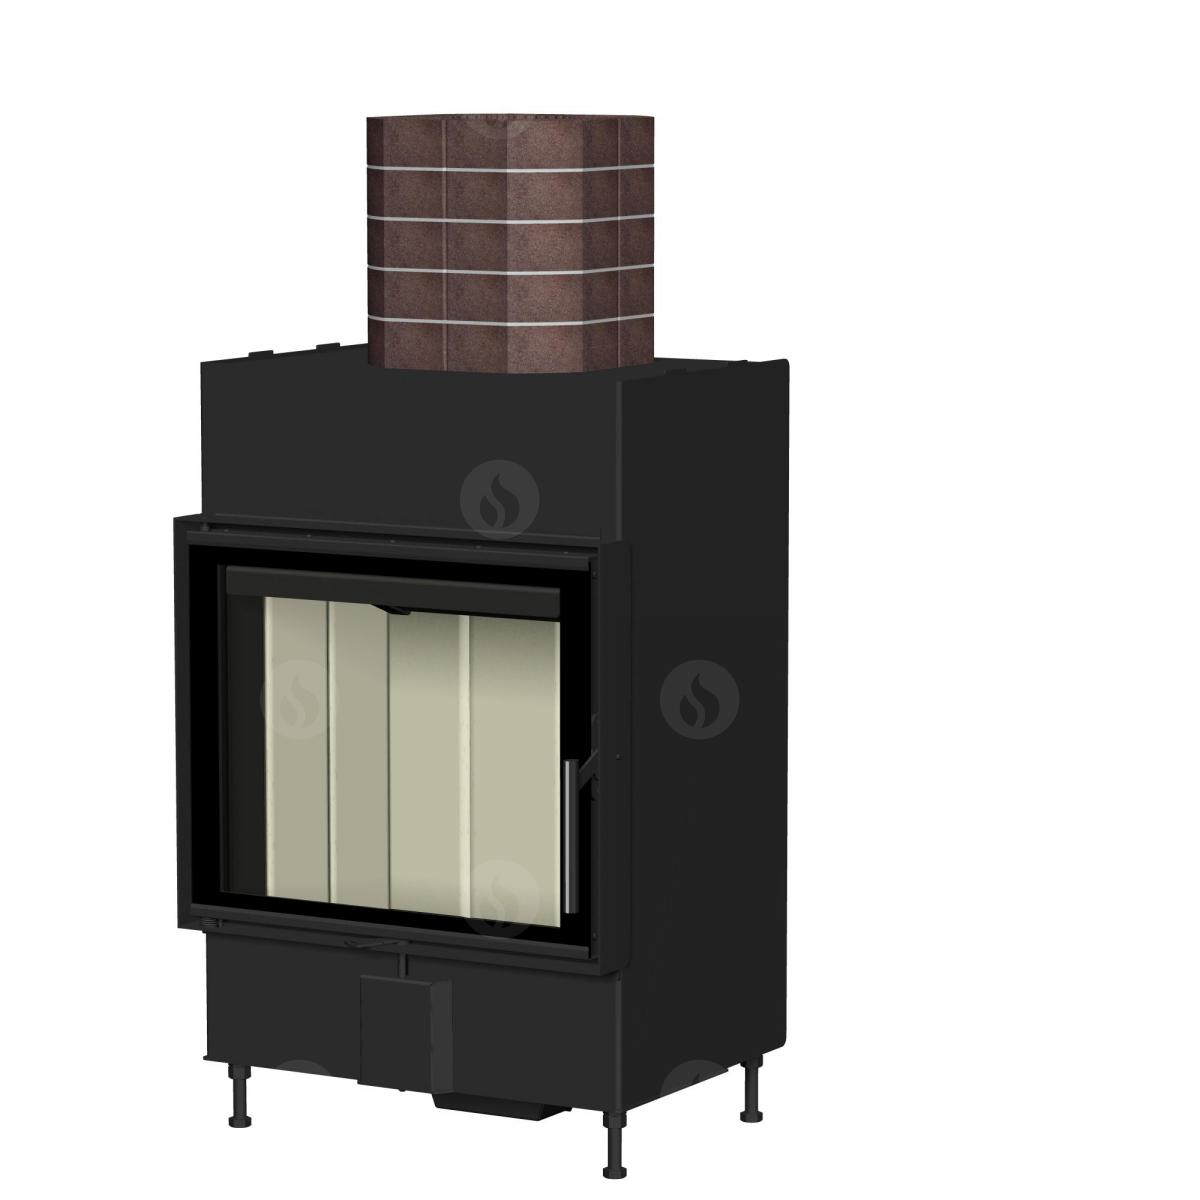 TOP ROMOTOP MAMMOTH ACCUMULATION SET for fireplace inserts with a flue exhaust of 150 mm